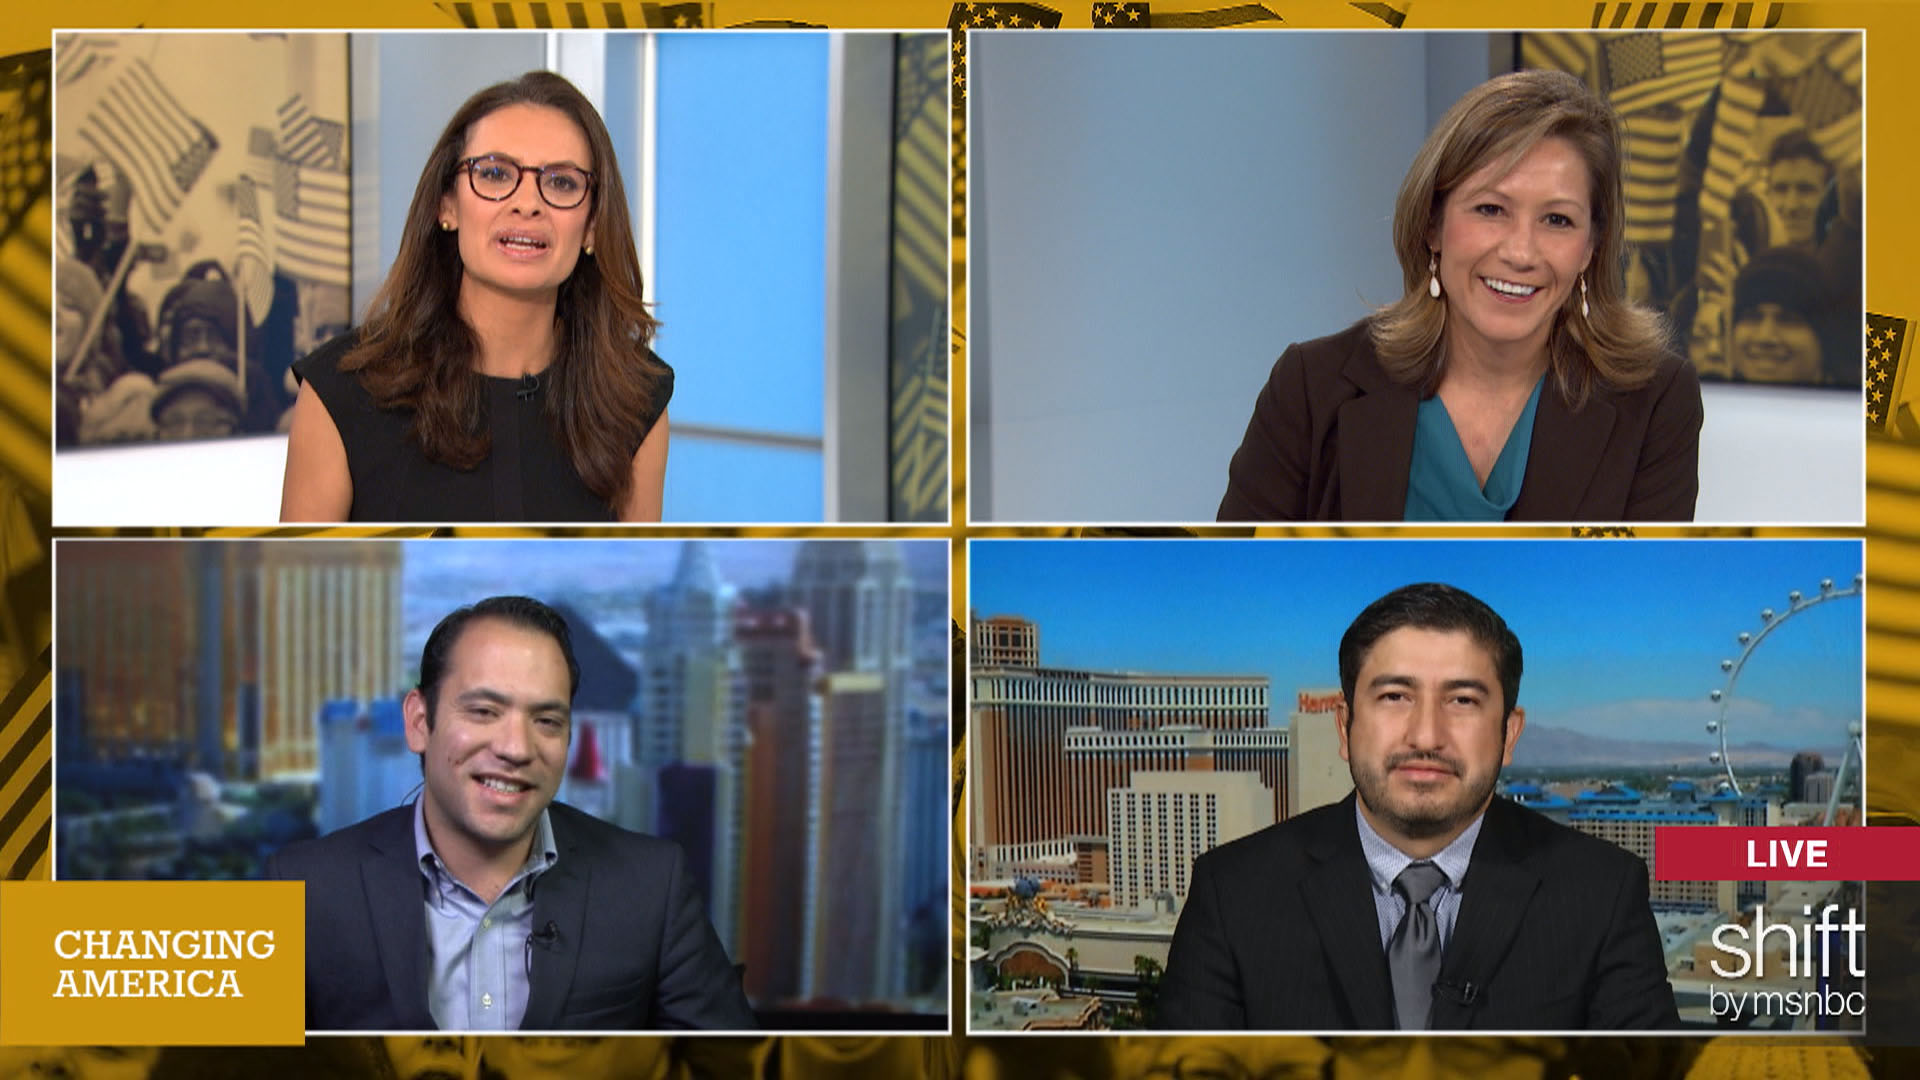 Why democratic campaigns attract Latinos